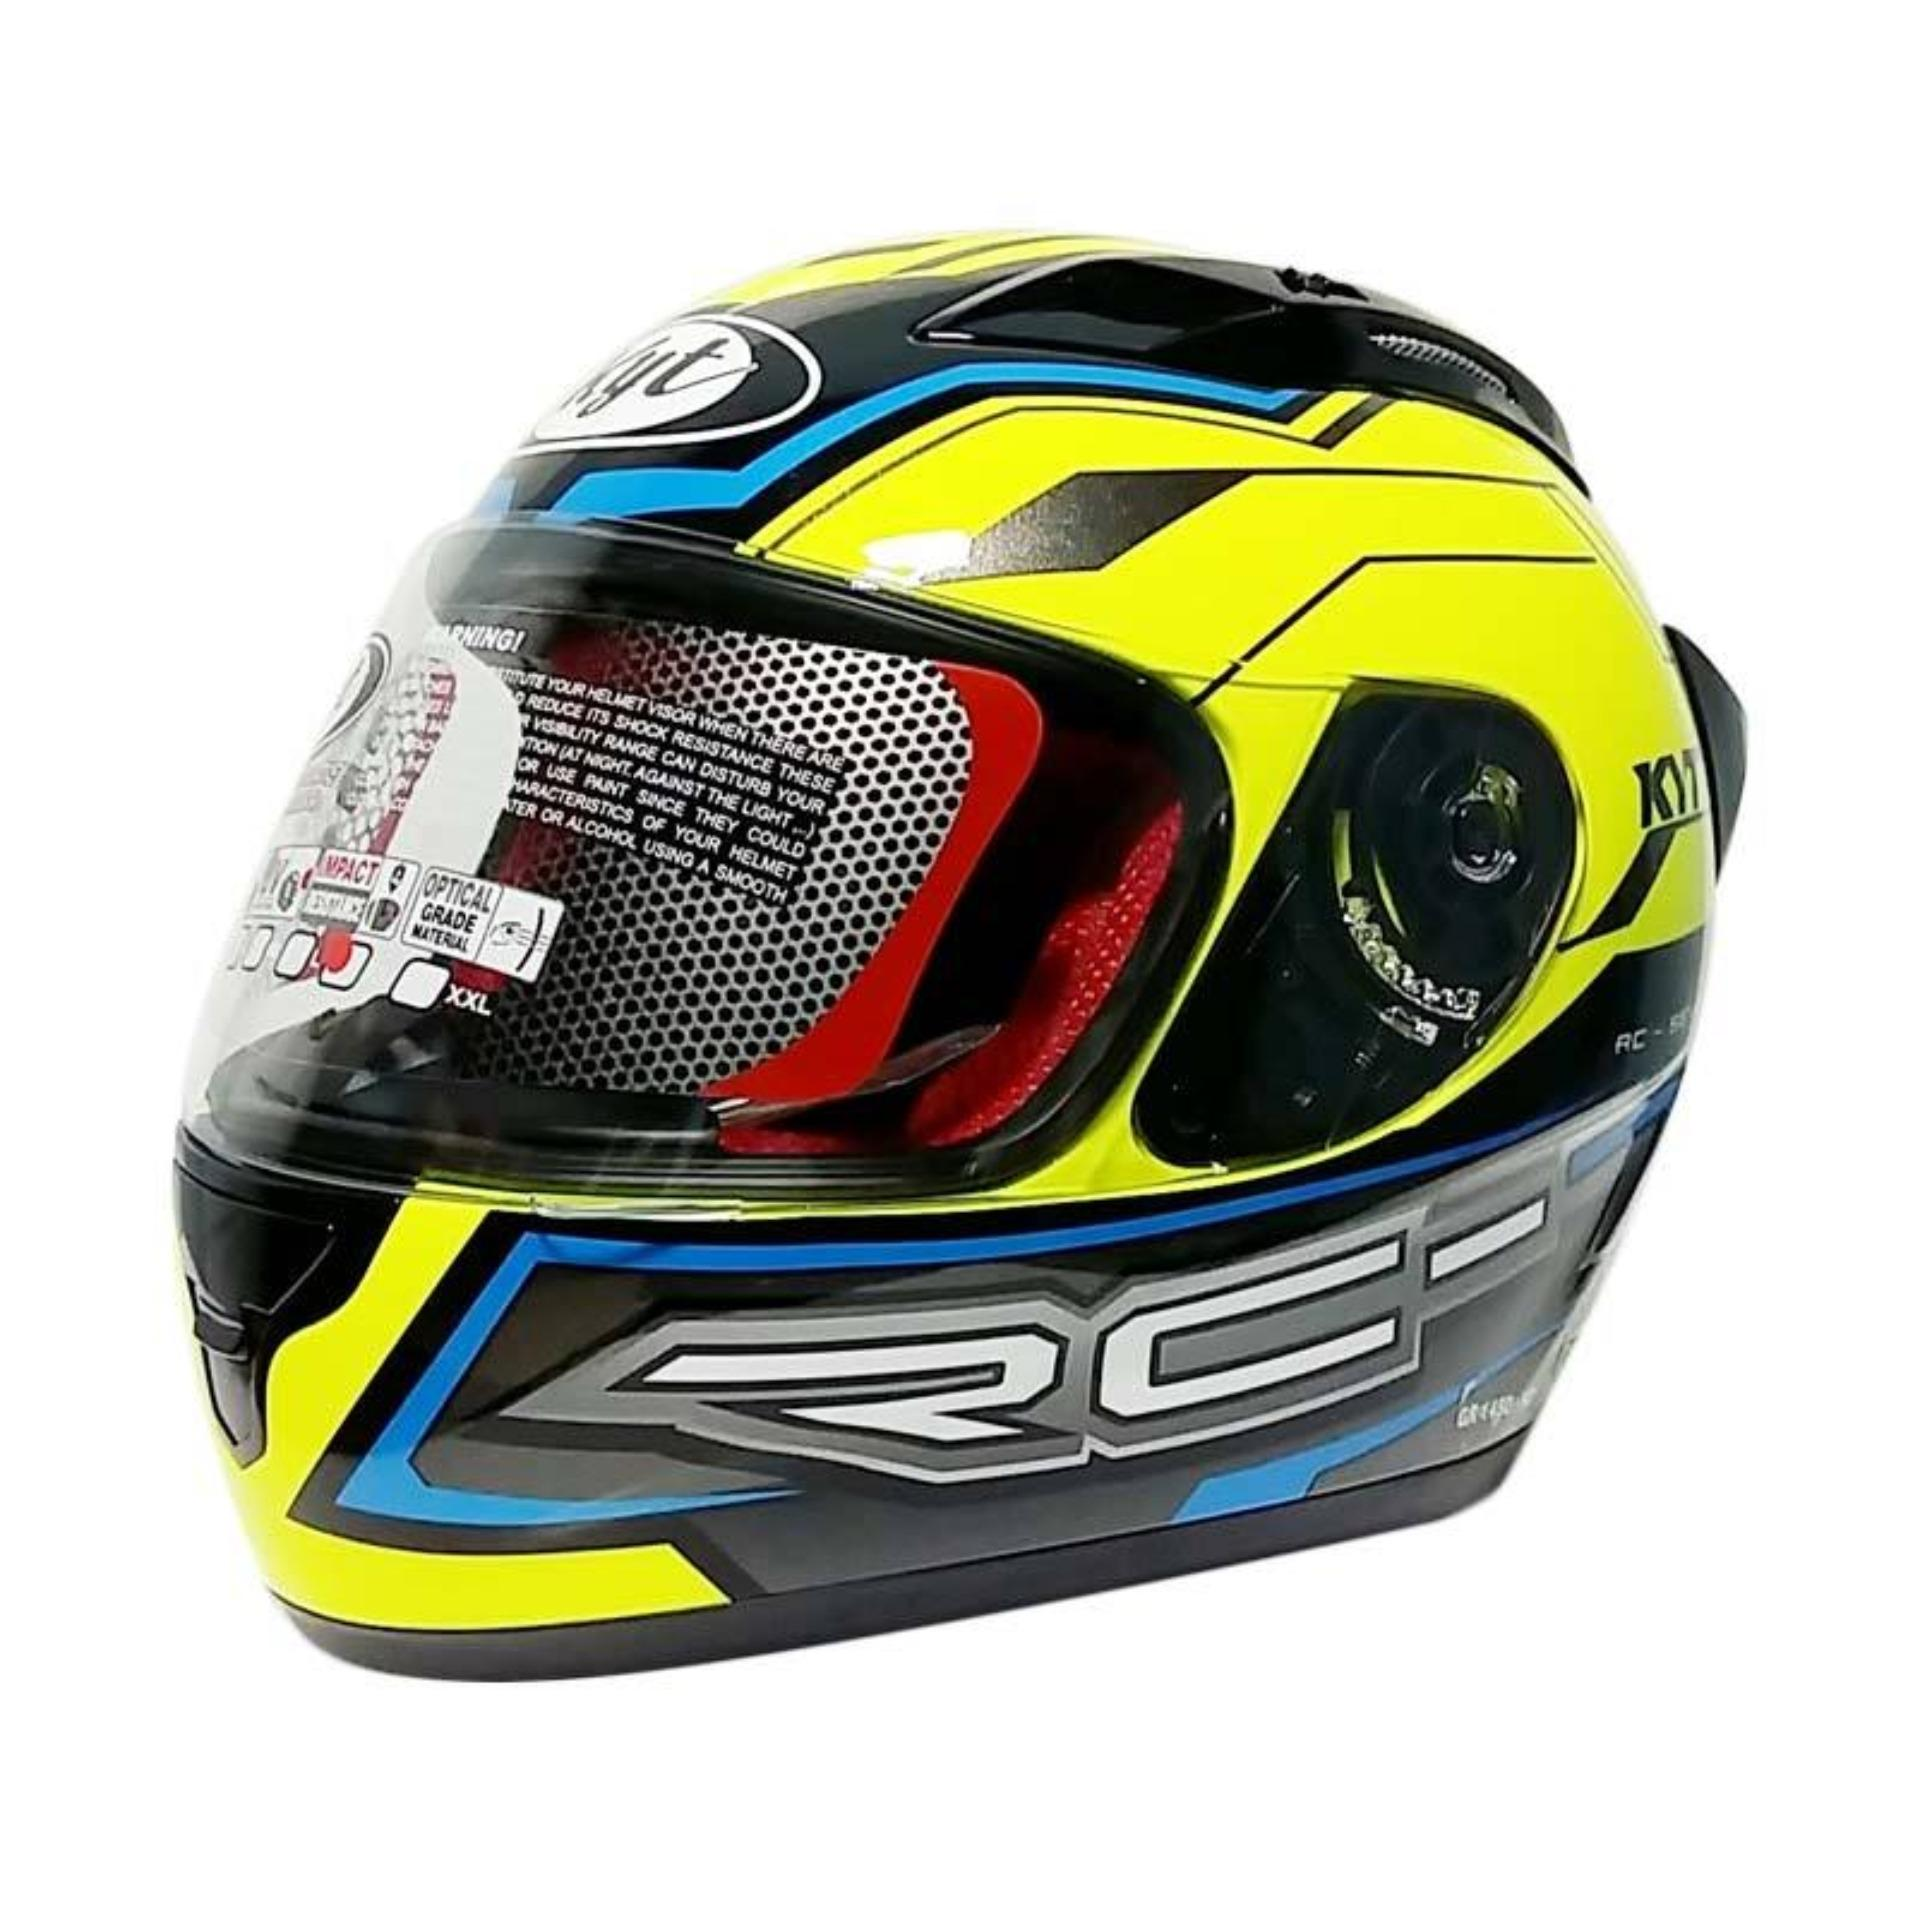 Promo Kyt Rc Seven 14 Helm Full Face Yellow Blue Black Kyt